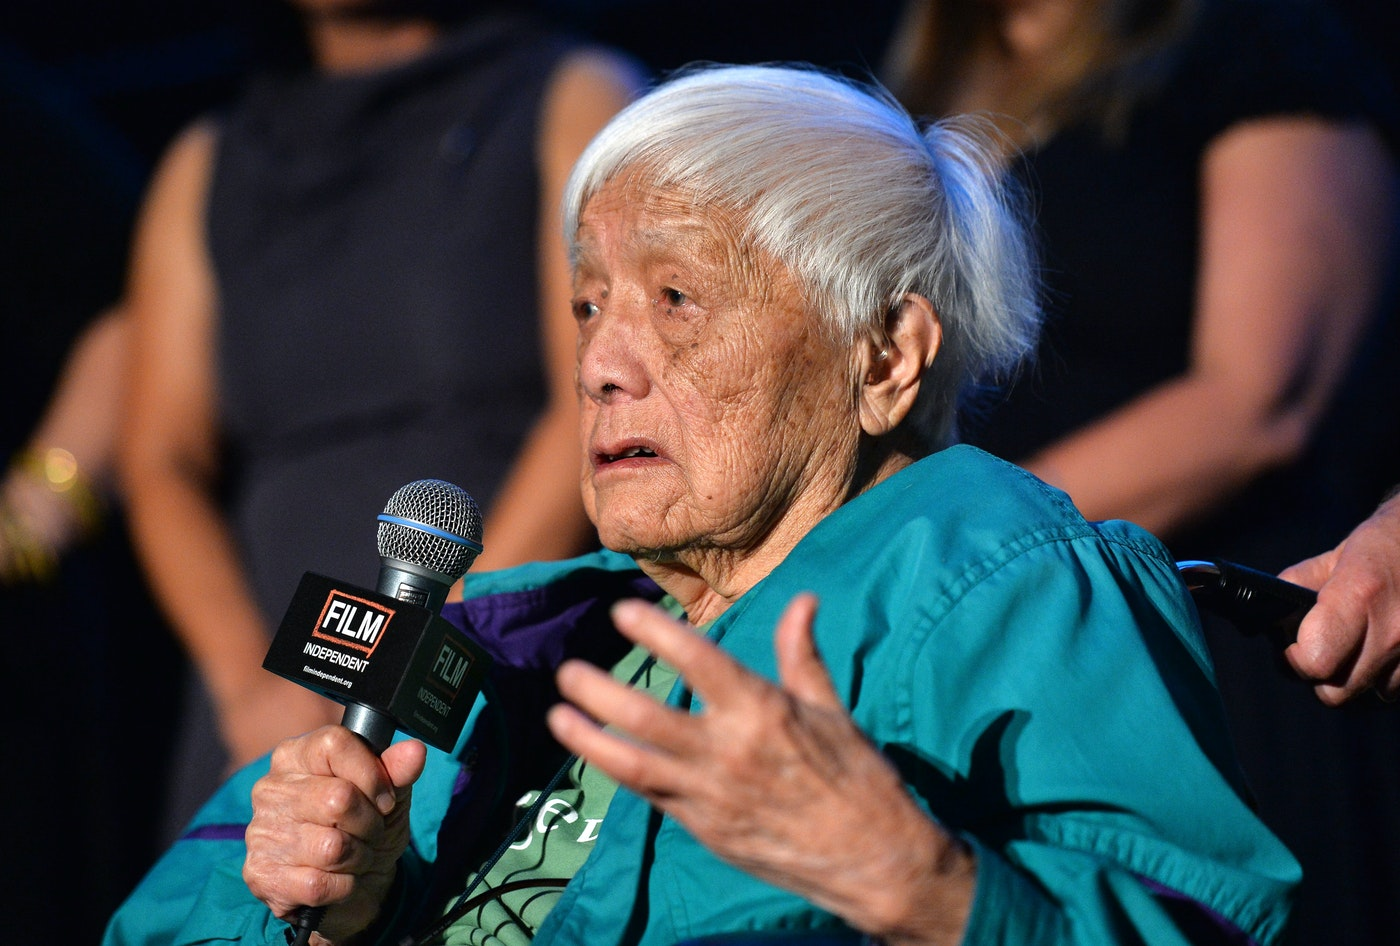 """LOS ANGELES, CA - JUNE 16:  Documentary subject Grace Lee Boggs speaks on stage at the """"American Revolutionary"""" premiere during the 2013 Los Angeles Film Festival at American Airlines Theater on June 16, 2013 in Los Angeles, California.  (Photo by Amanda Edwards/WireImage)"""